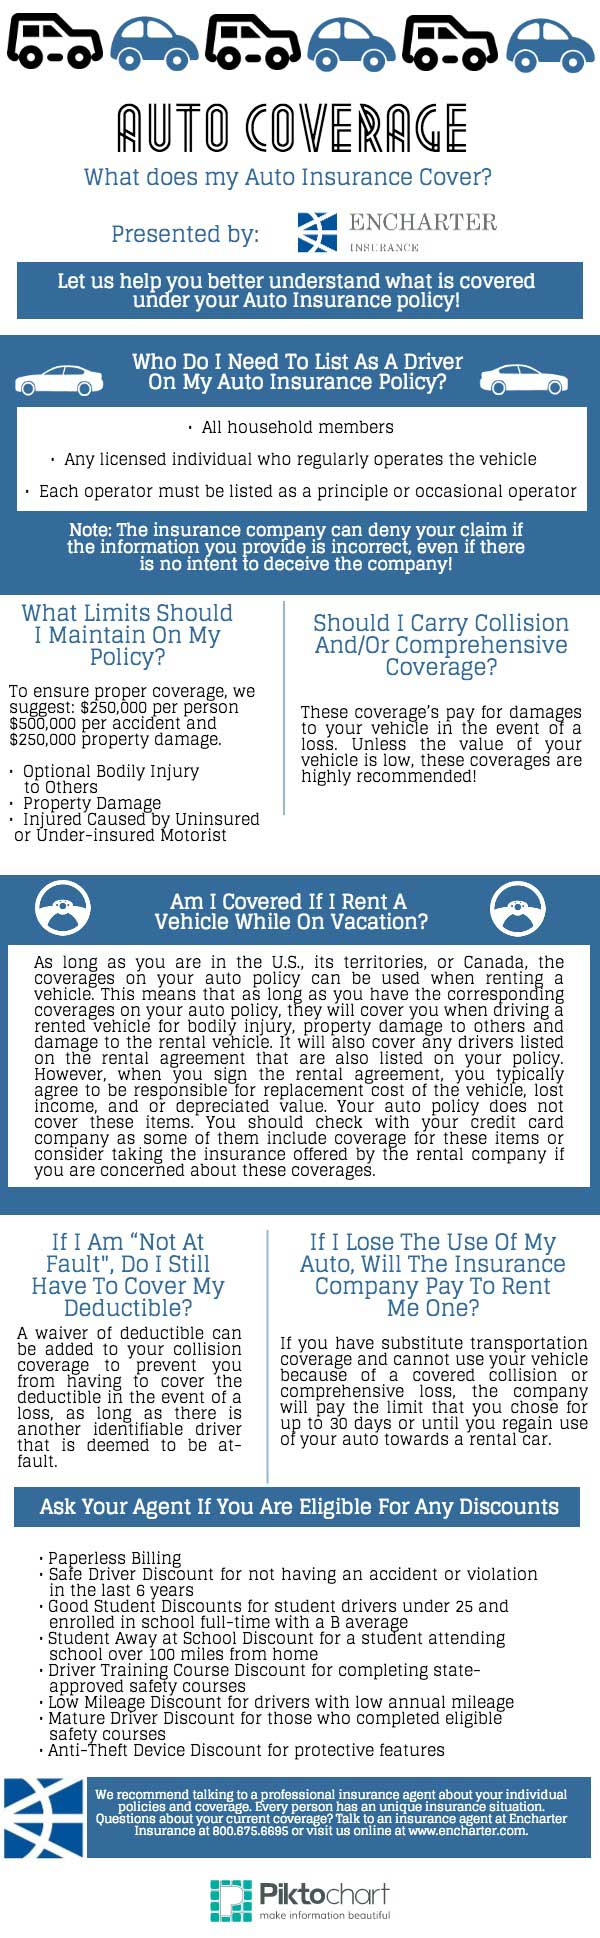 common auto insurance questions answered